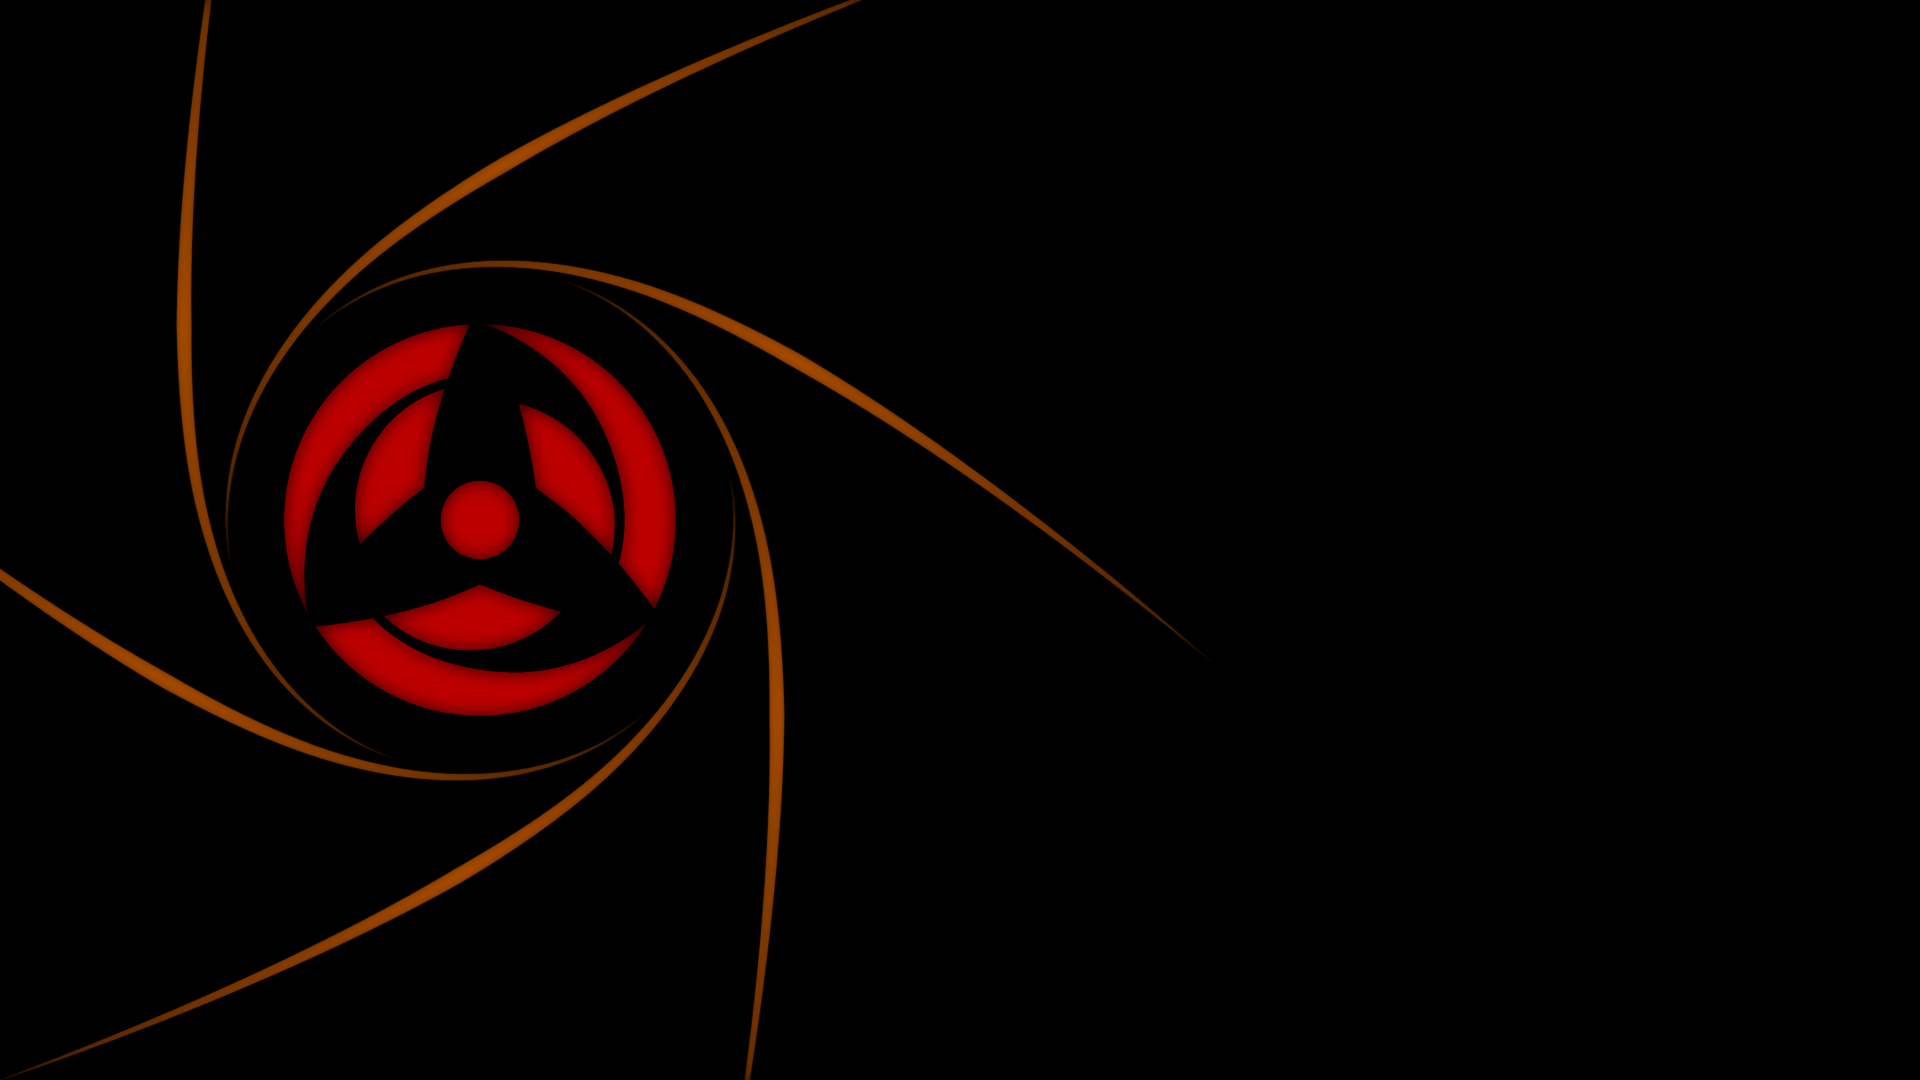 Naruto Wallpaper Iphone 4 Download 1920x1080 Sharingan Obito Naruto Wallpapers For